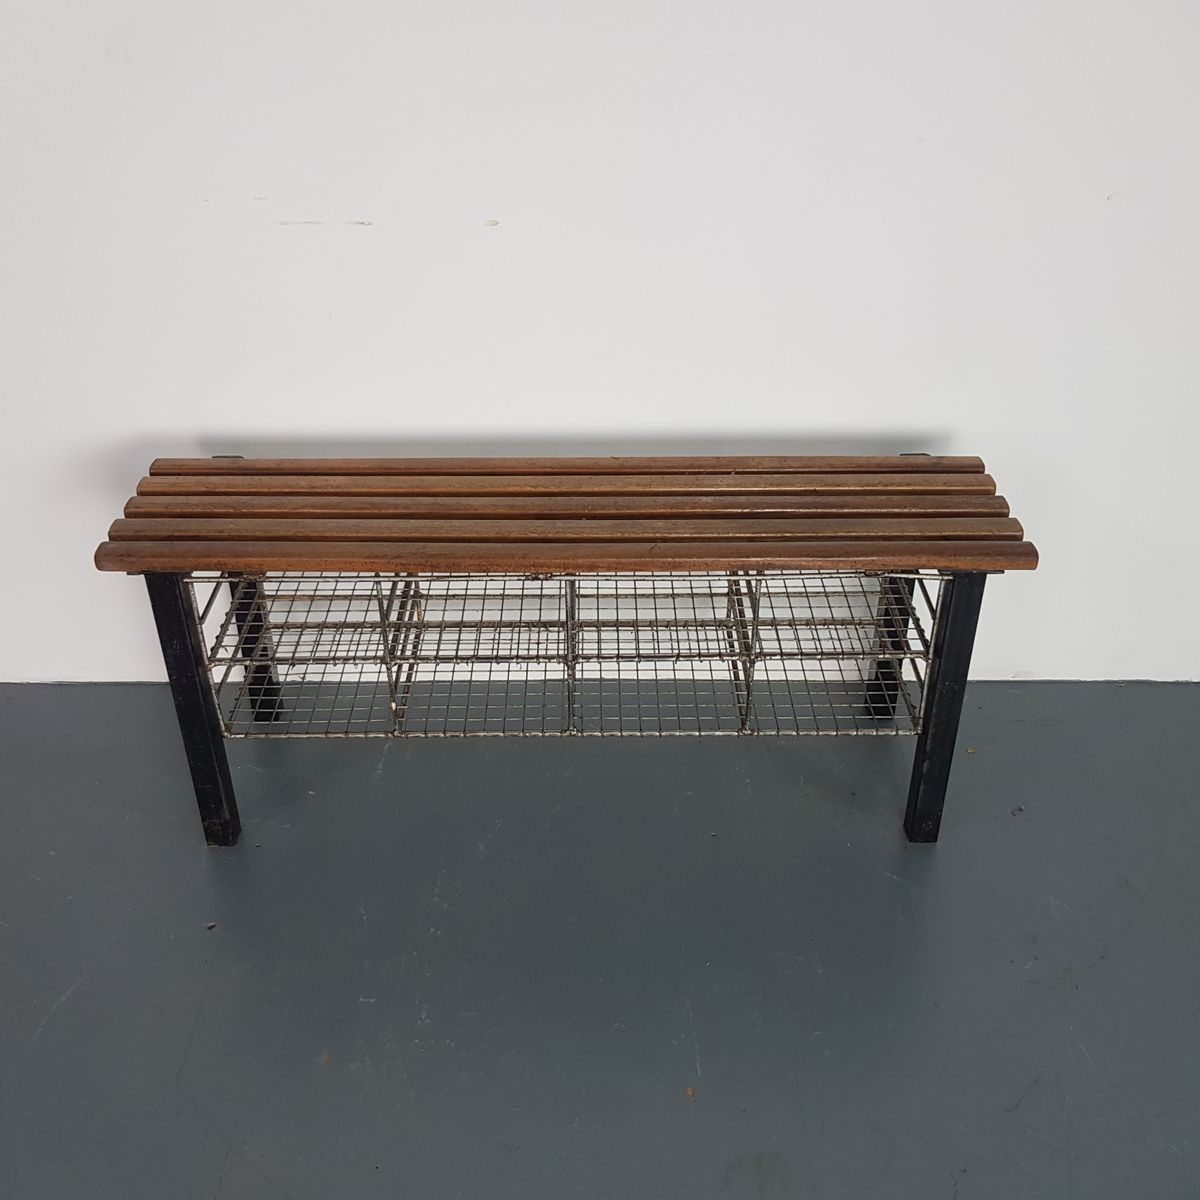 Vintage Shoe Rack Bench in Wire Mesh & Wood